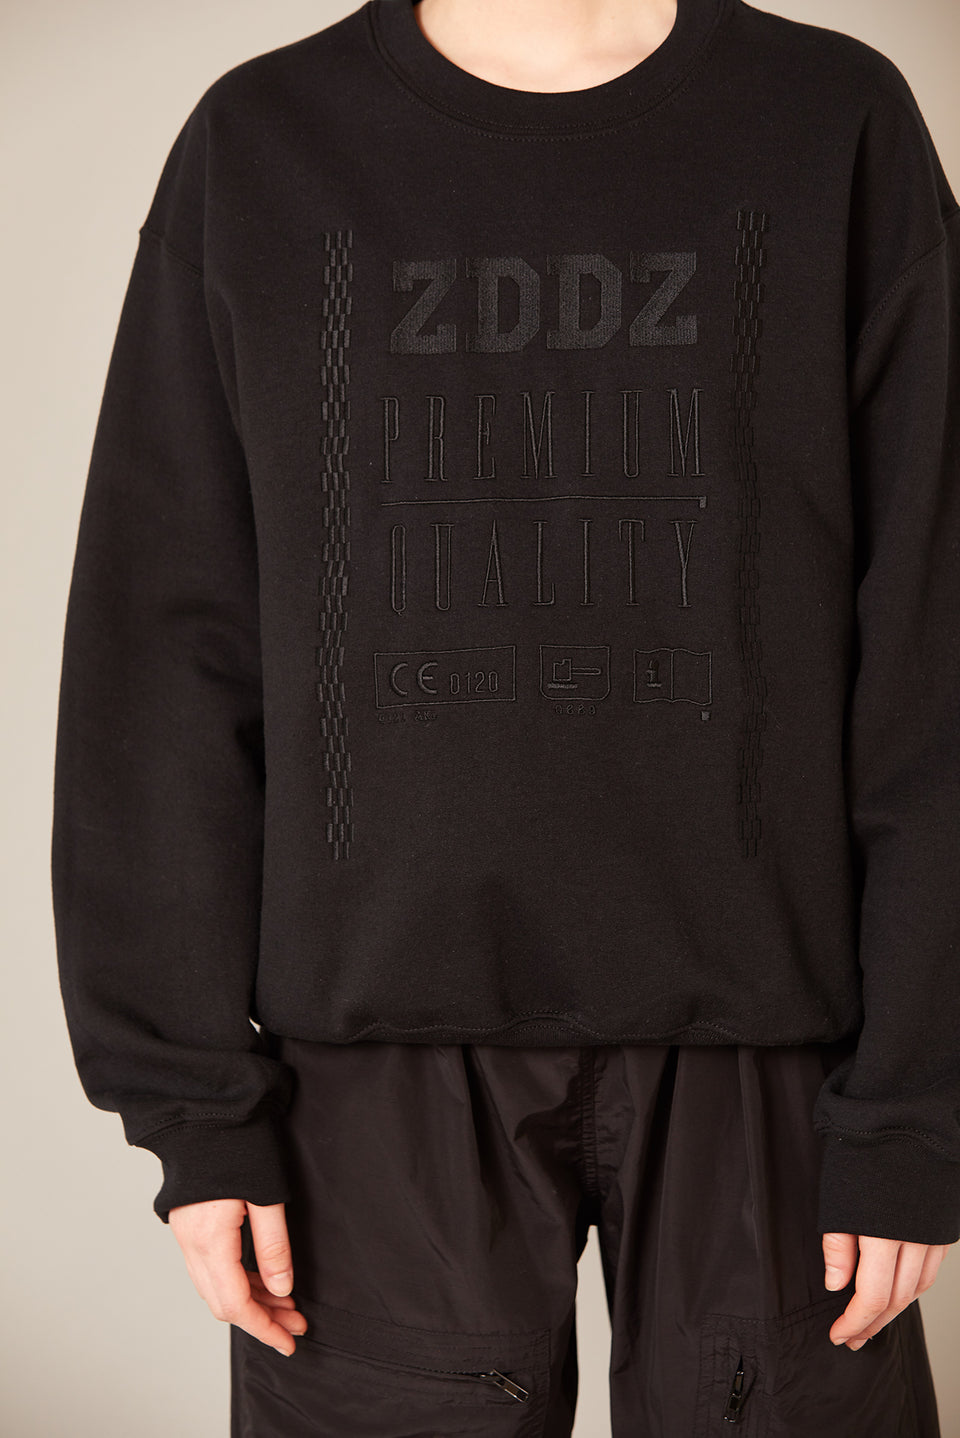 Premium Quality Embroidery Sweatshirt Black